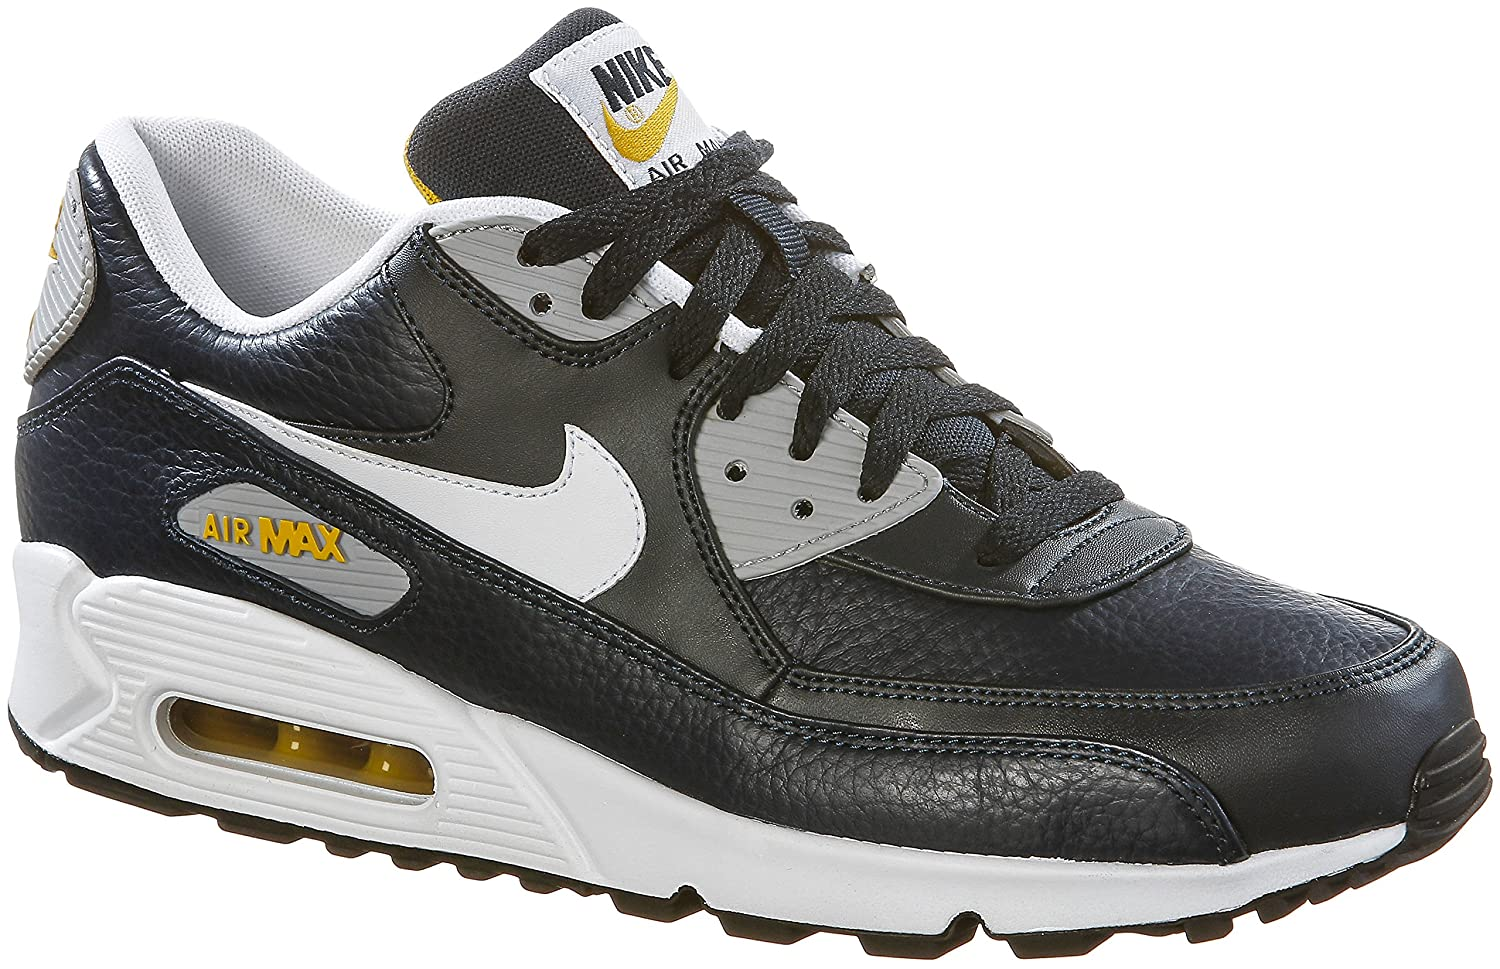 new styles 8807d 249b4 Amazon.com   Nike air max 90 LTR Mens Trainers 652980 Sneakers Shoes   Road  Running